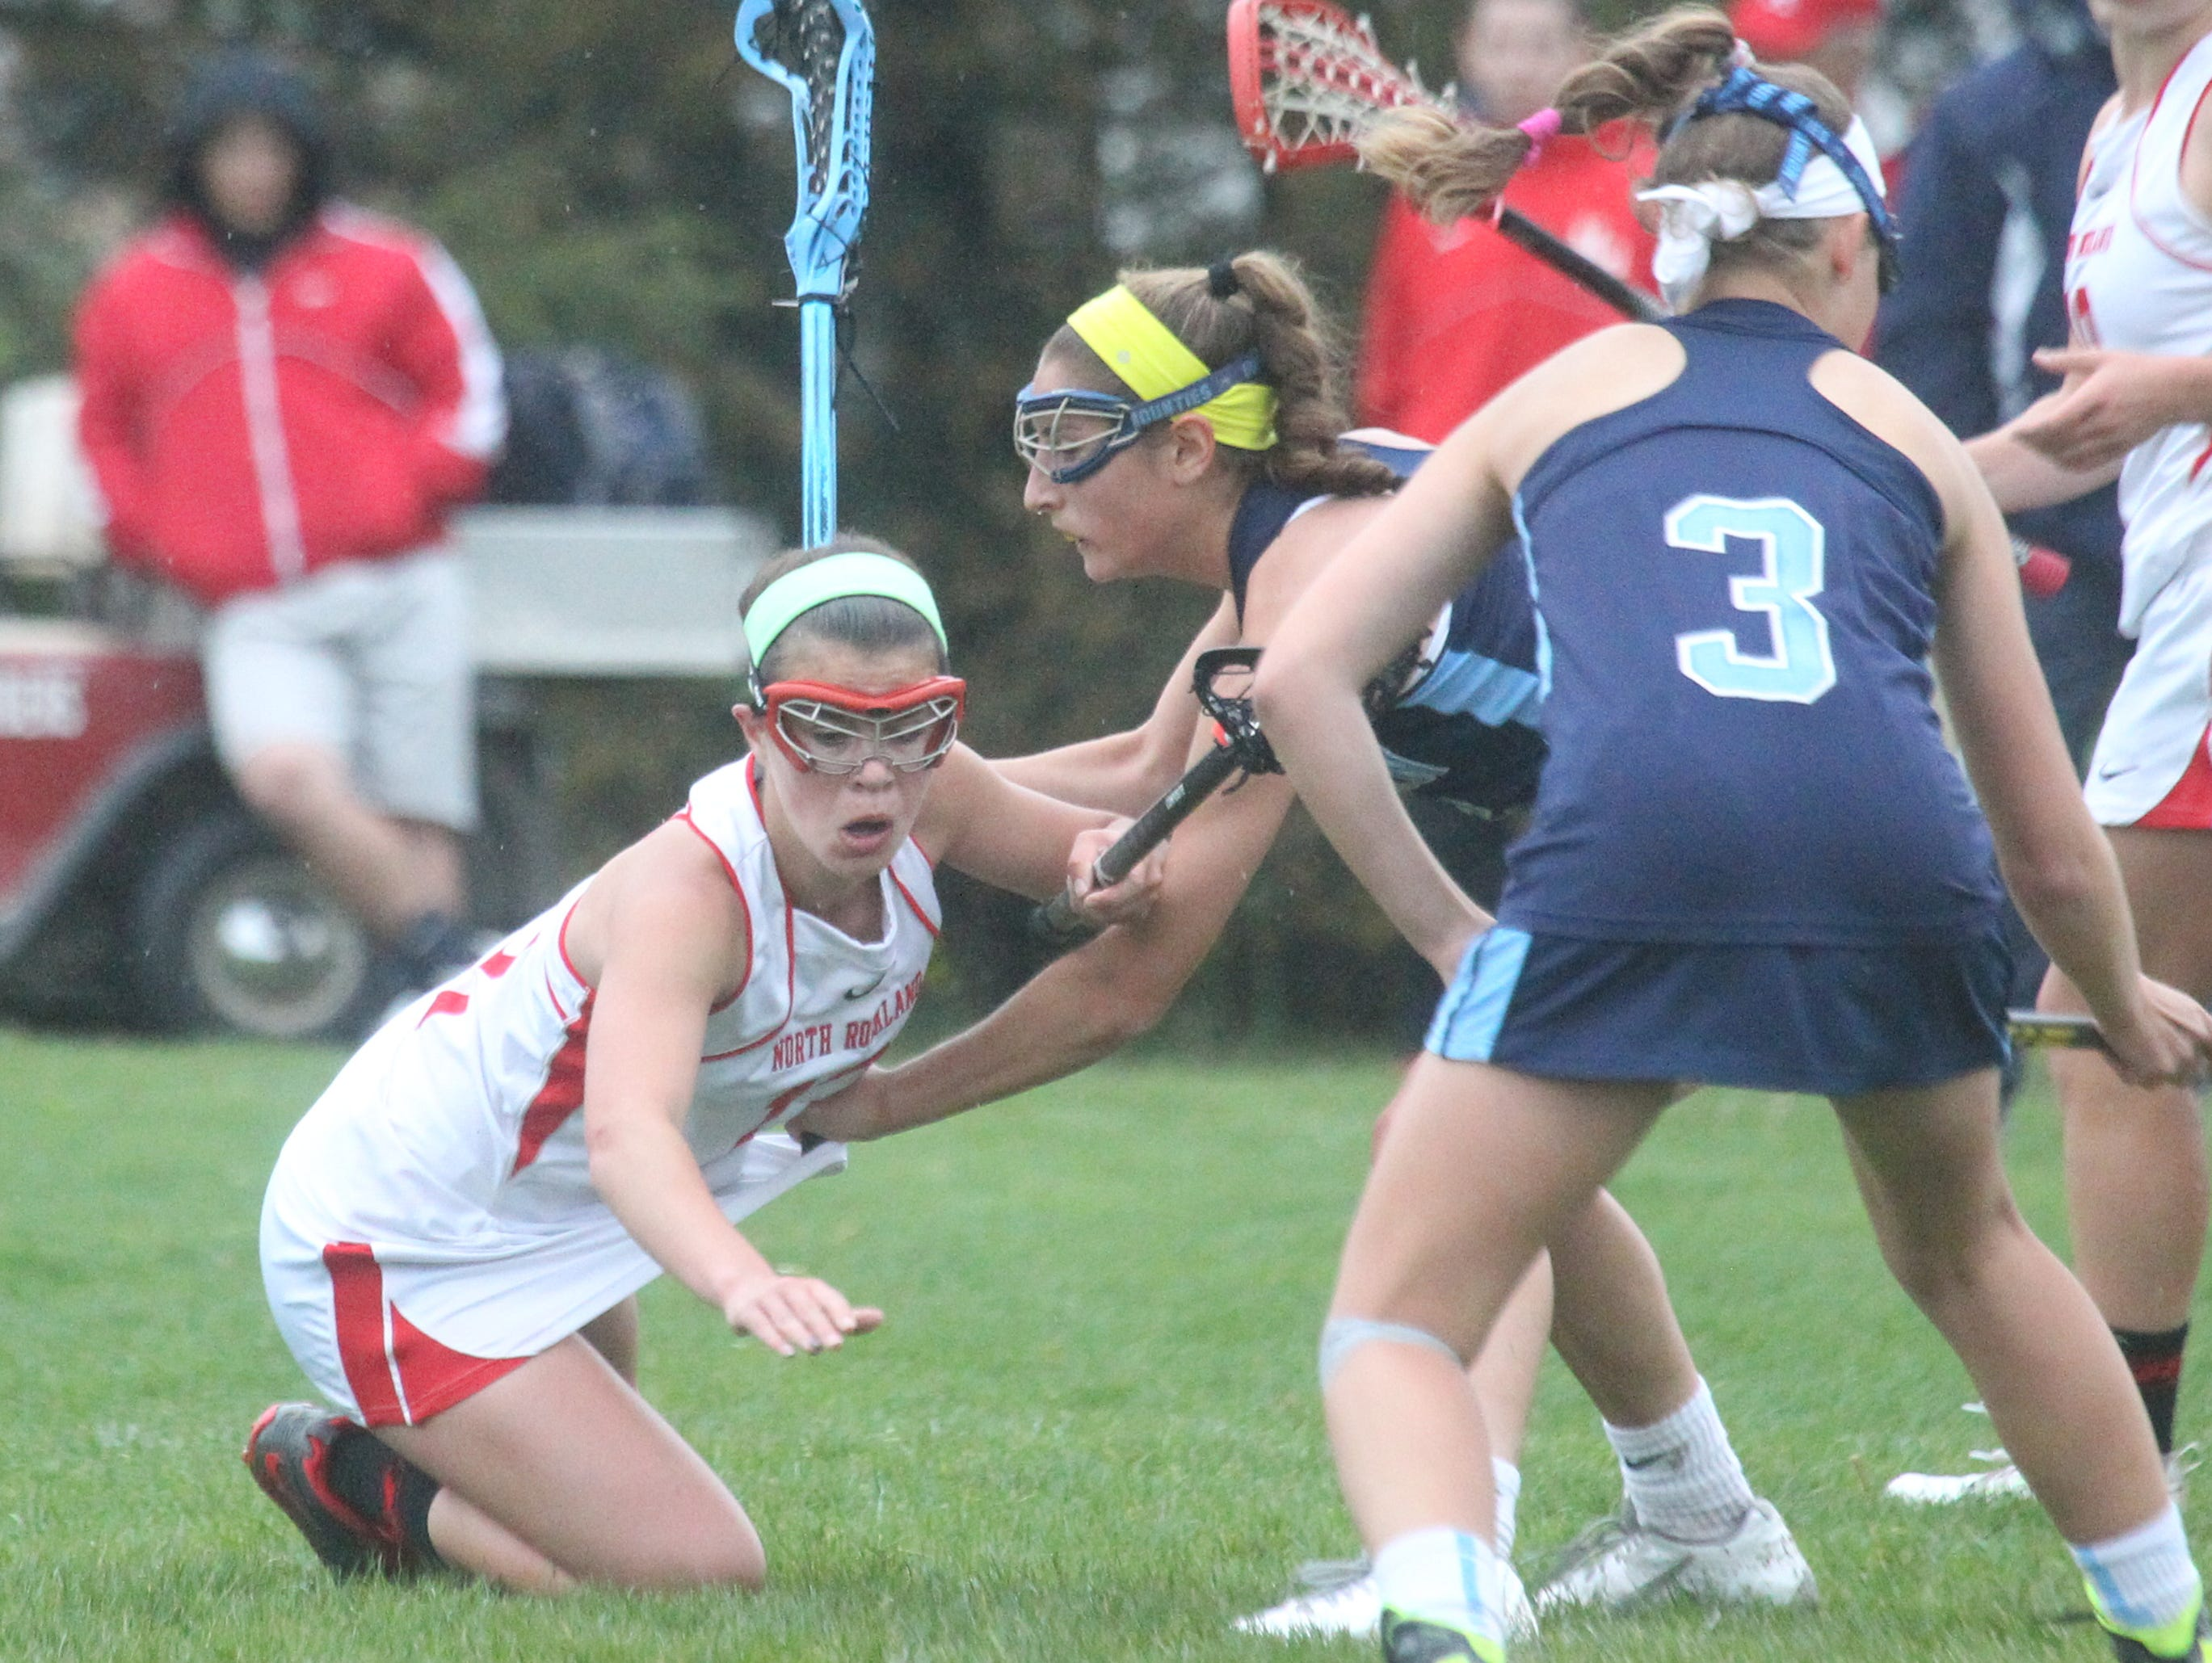 North Rockland lacrosse beat Suffern 8-7 at North Rockland May 4, 2016.